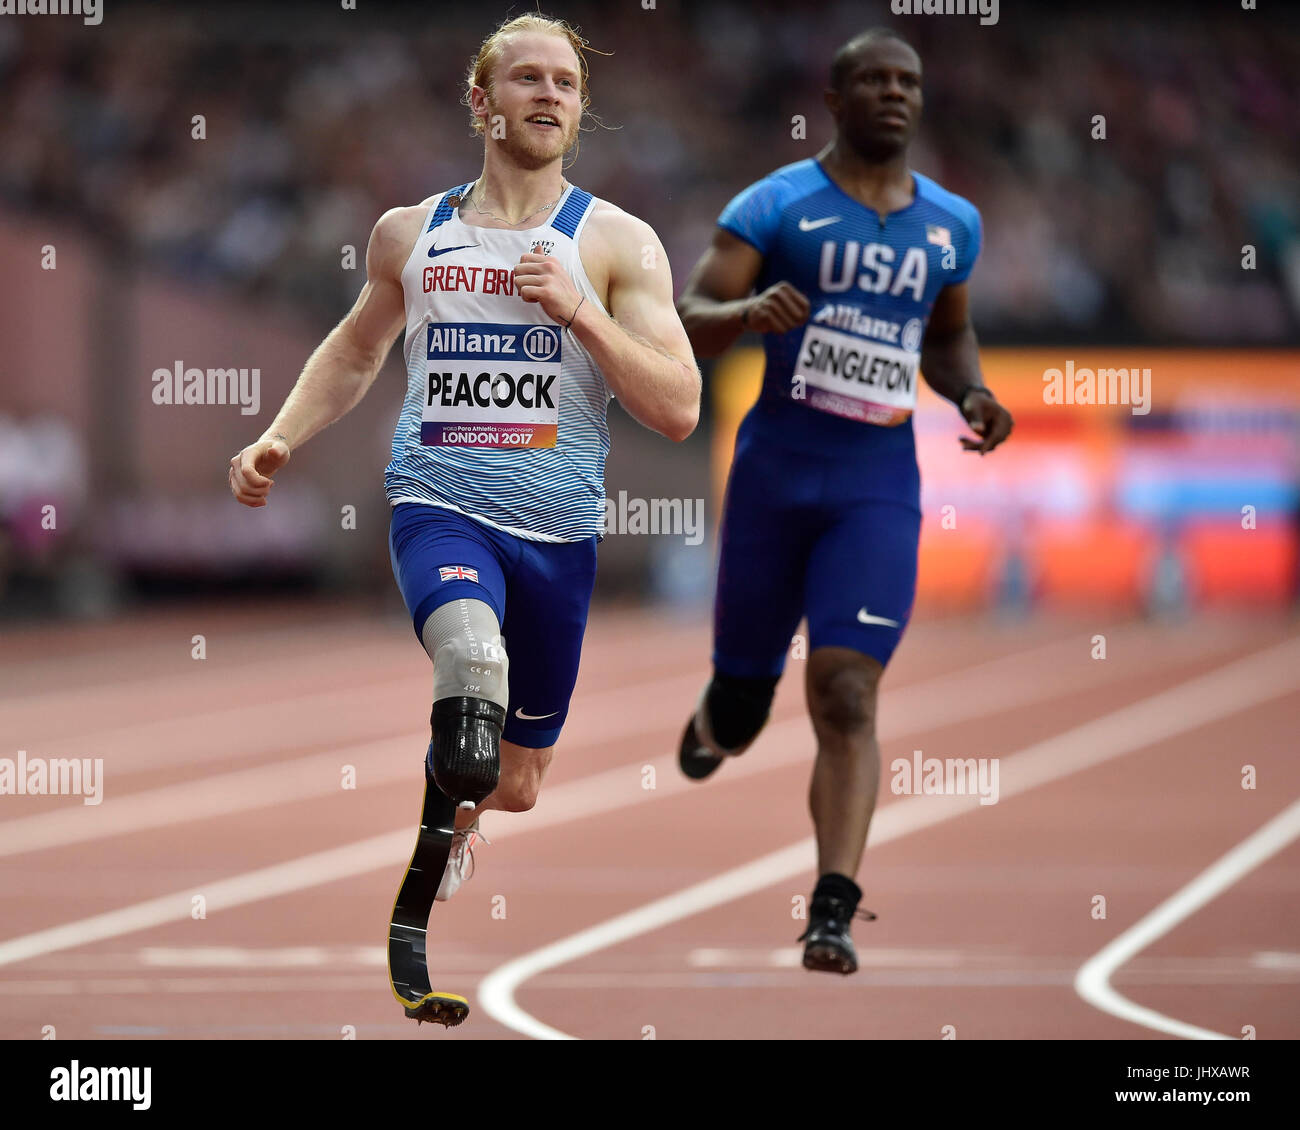 London, UK. 16th July, 2017. Jonnie Peacock in Men's 100M T44 during World Para Athletics Championships London - Stock Image